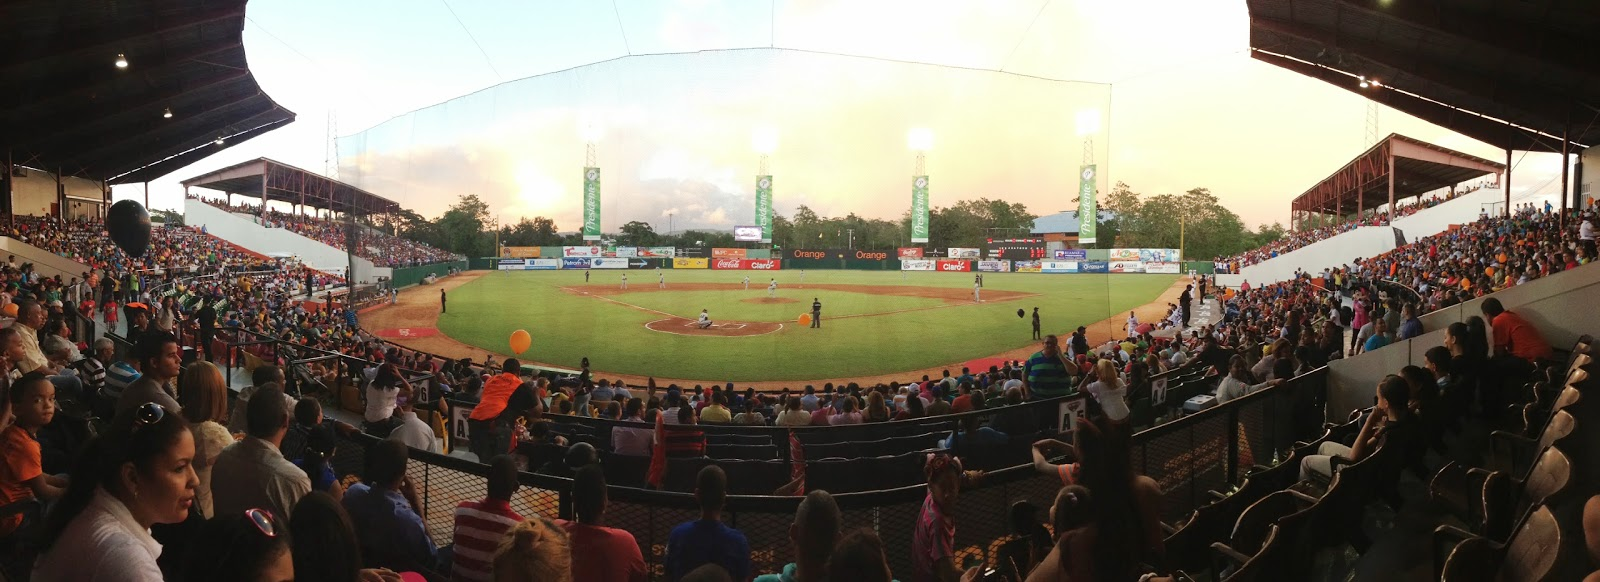 Sun sets at Estadio Julian Javier in San Francisco de Macoris, Dominican Republic